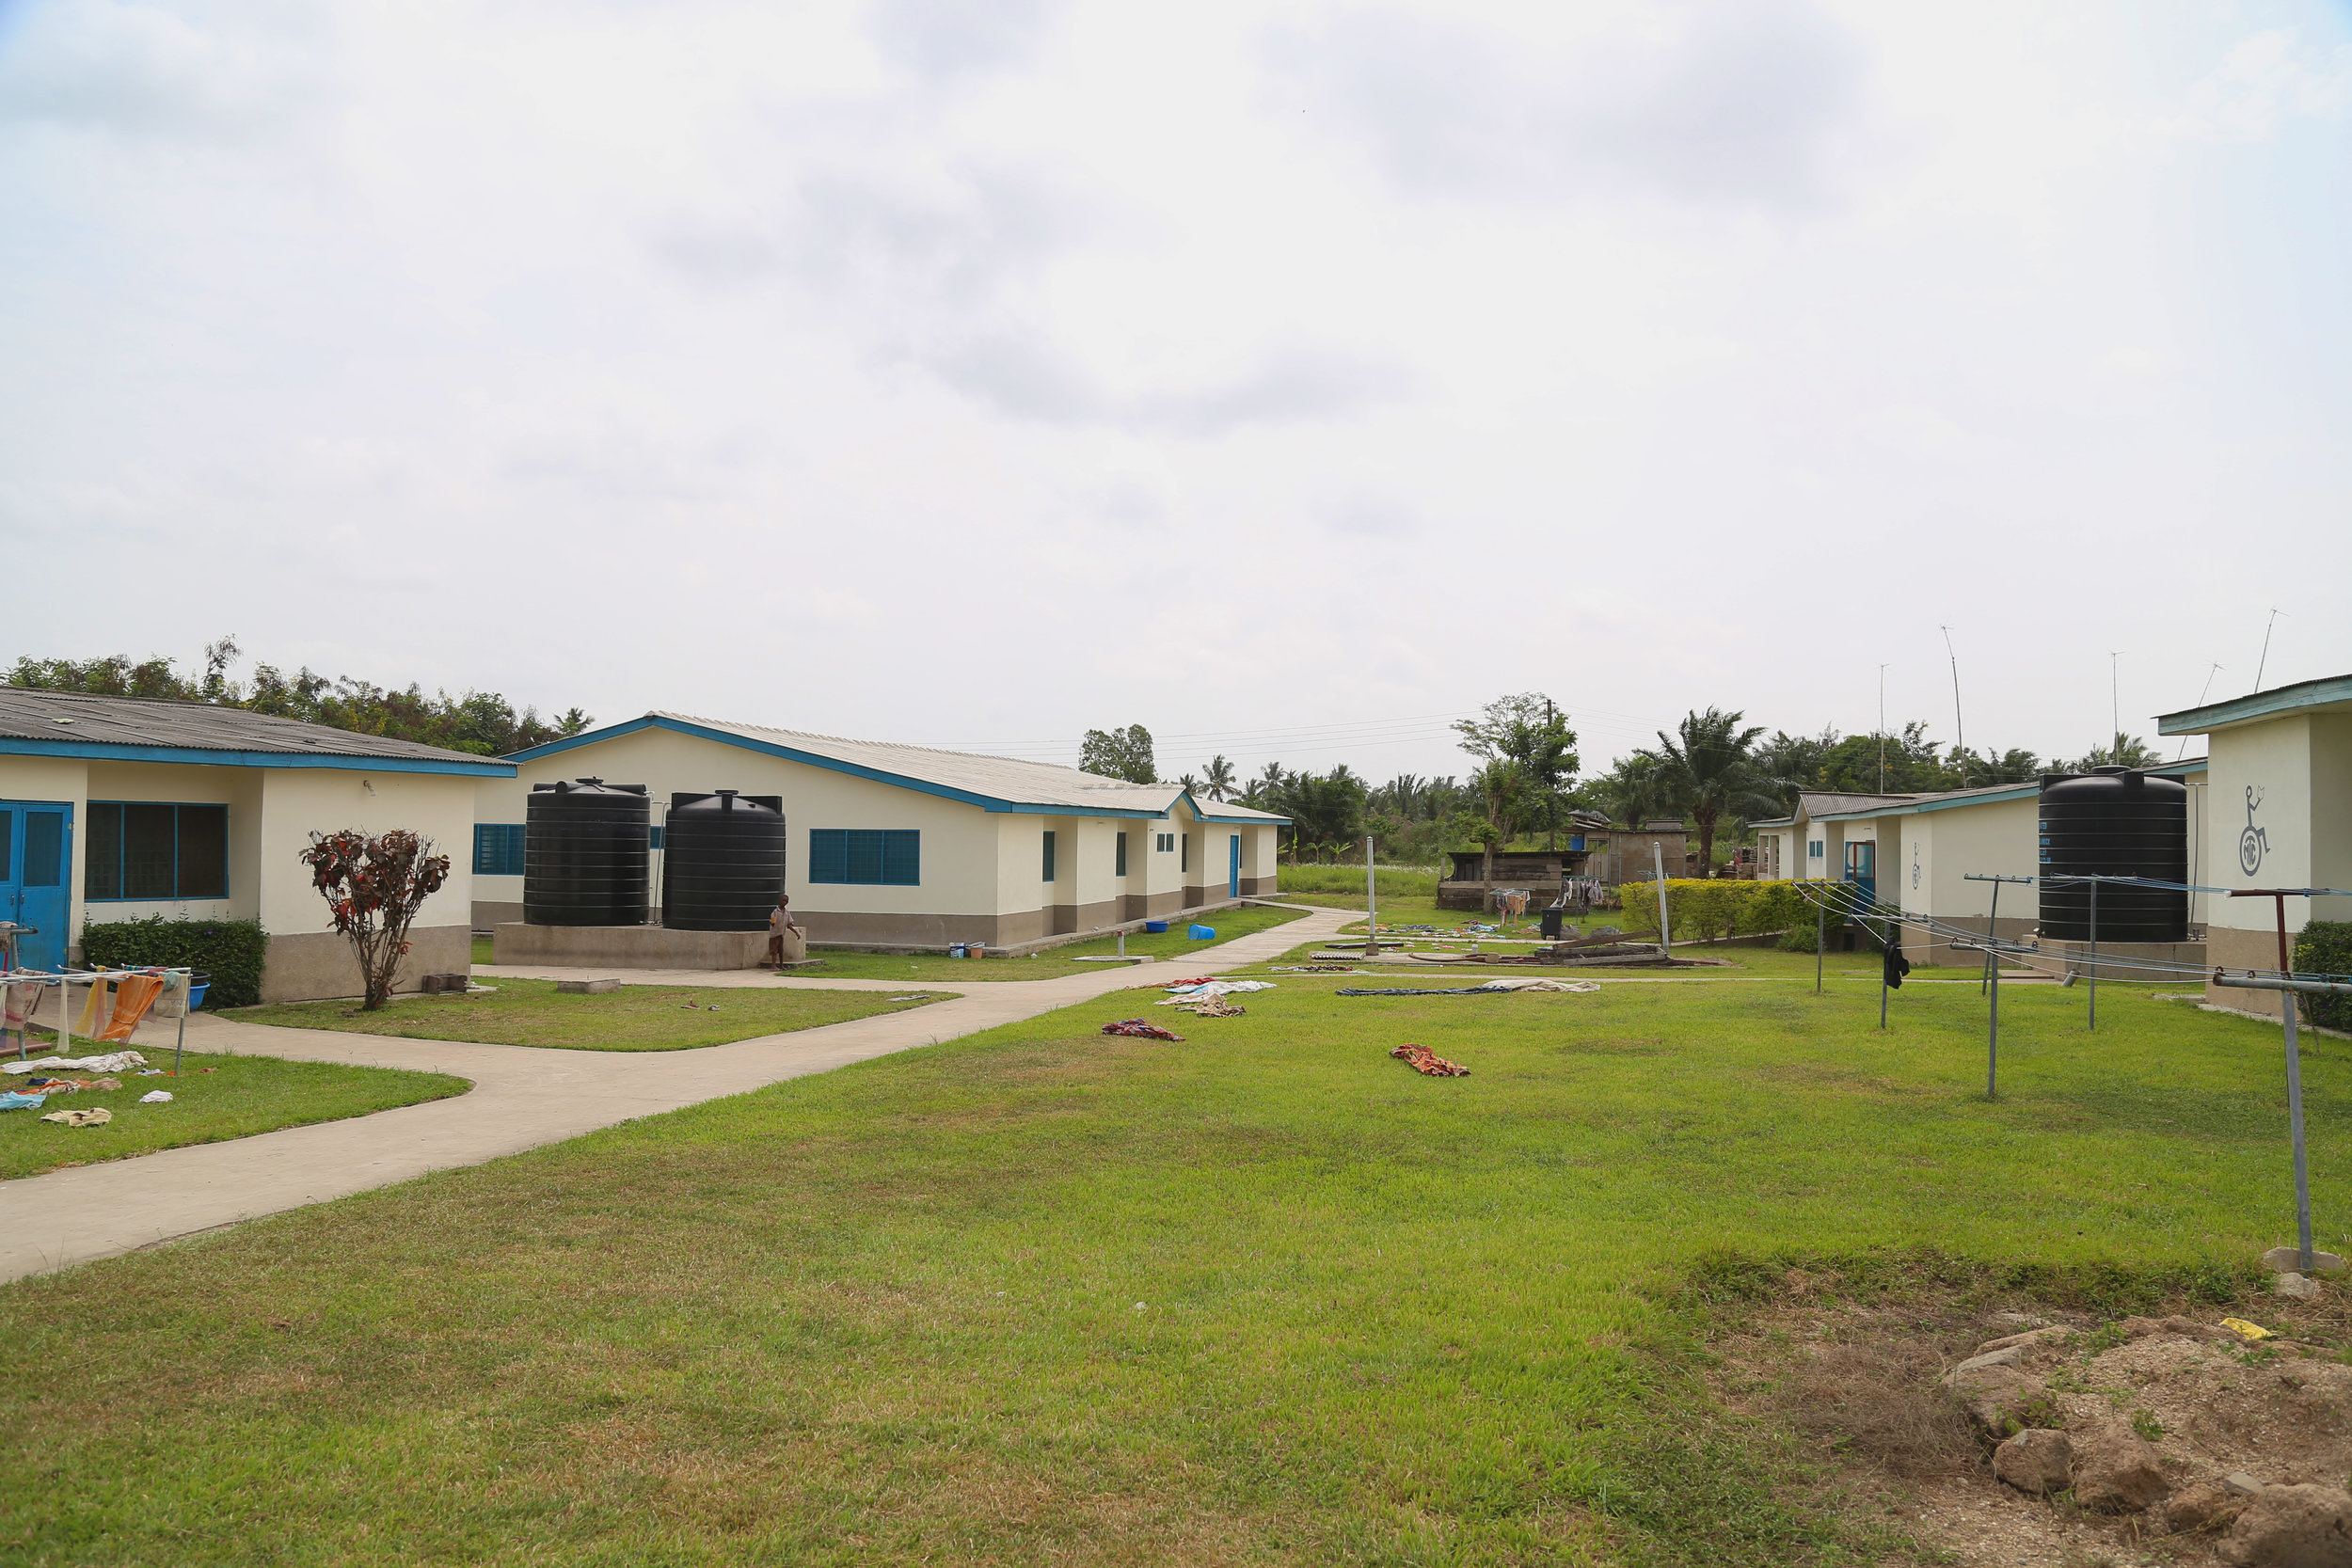 Our dormitory and vocational skills building.